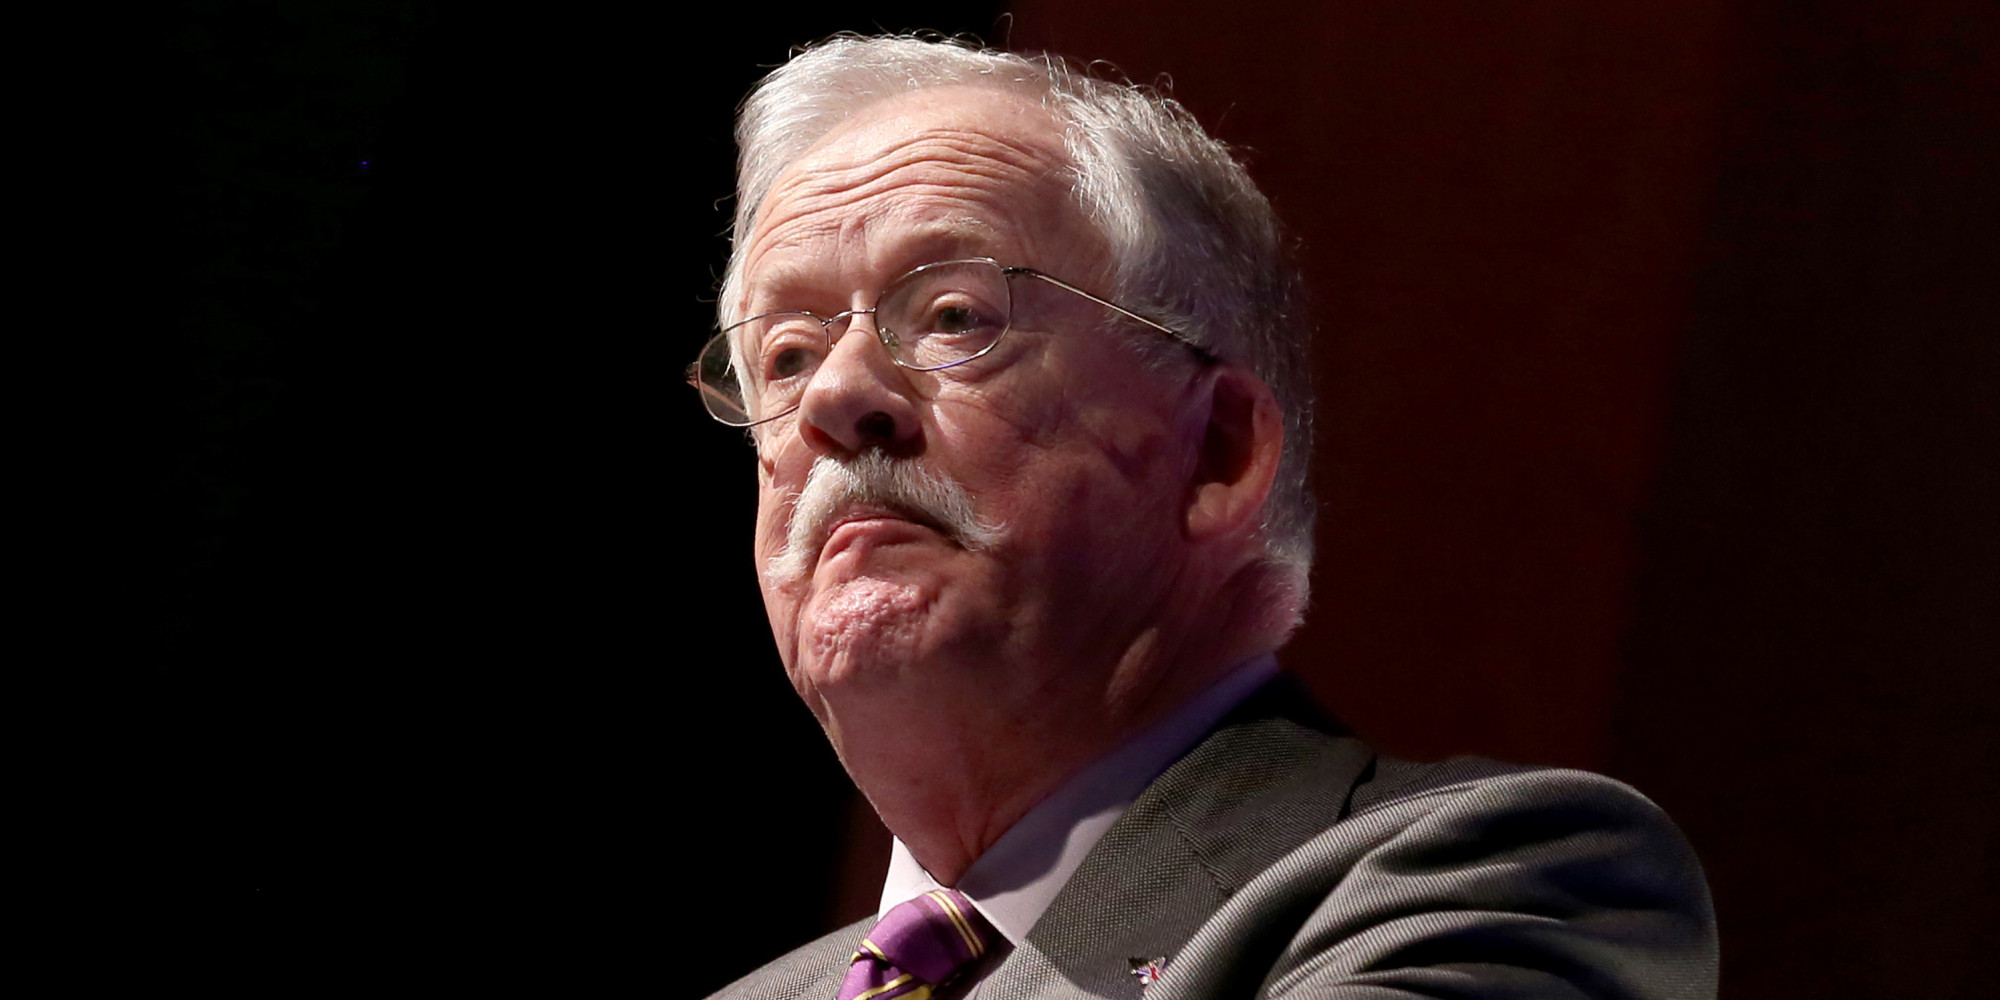 TORQUAY, ENGLAND - FEBRUARY 28:  Roger Helmer MEP and UKIP Energy and Industry spokesman speaks at the UKIP 2014 Spring Conference at the Riviera International on February 28, 2014 in Torquay, England. Ukip announced last week that the MEP Roger Helmer, who is currently at the centre of a homophobia row, will contest the Newark parliamentary by-election in a bid to become the partys first ever MP.  (Photo by Matt Cardy/Getty Images)